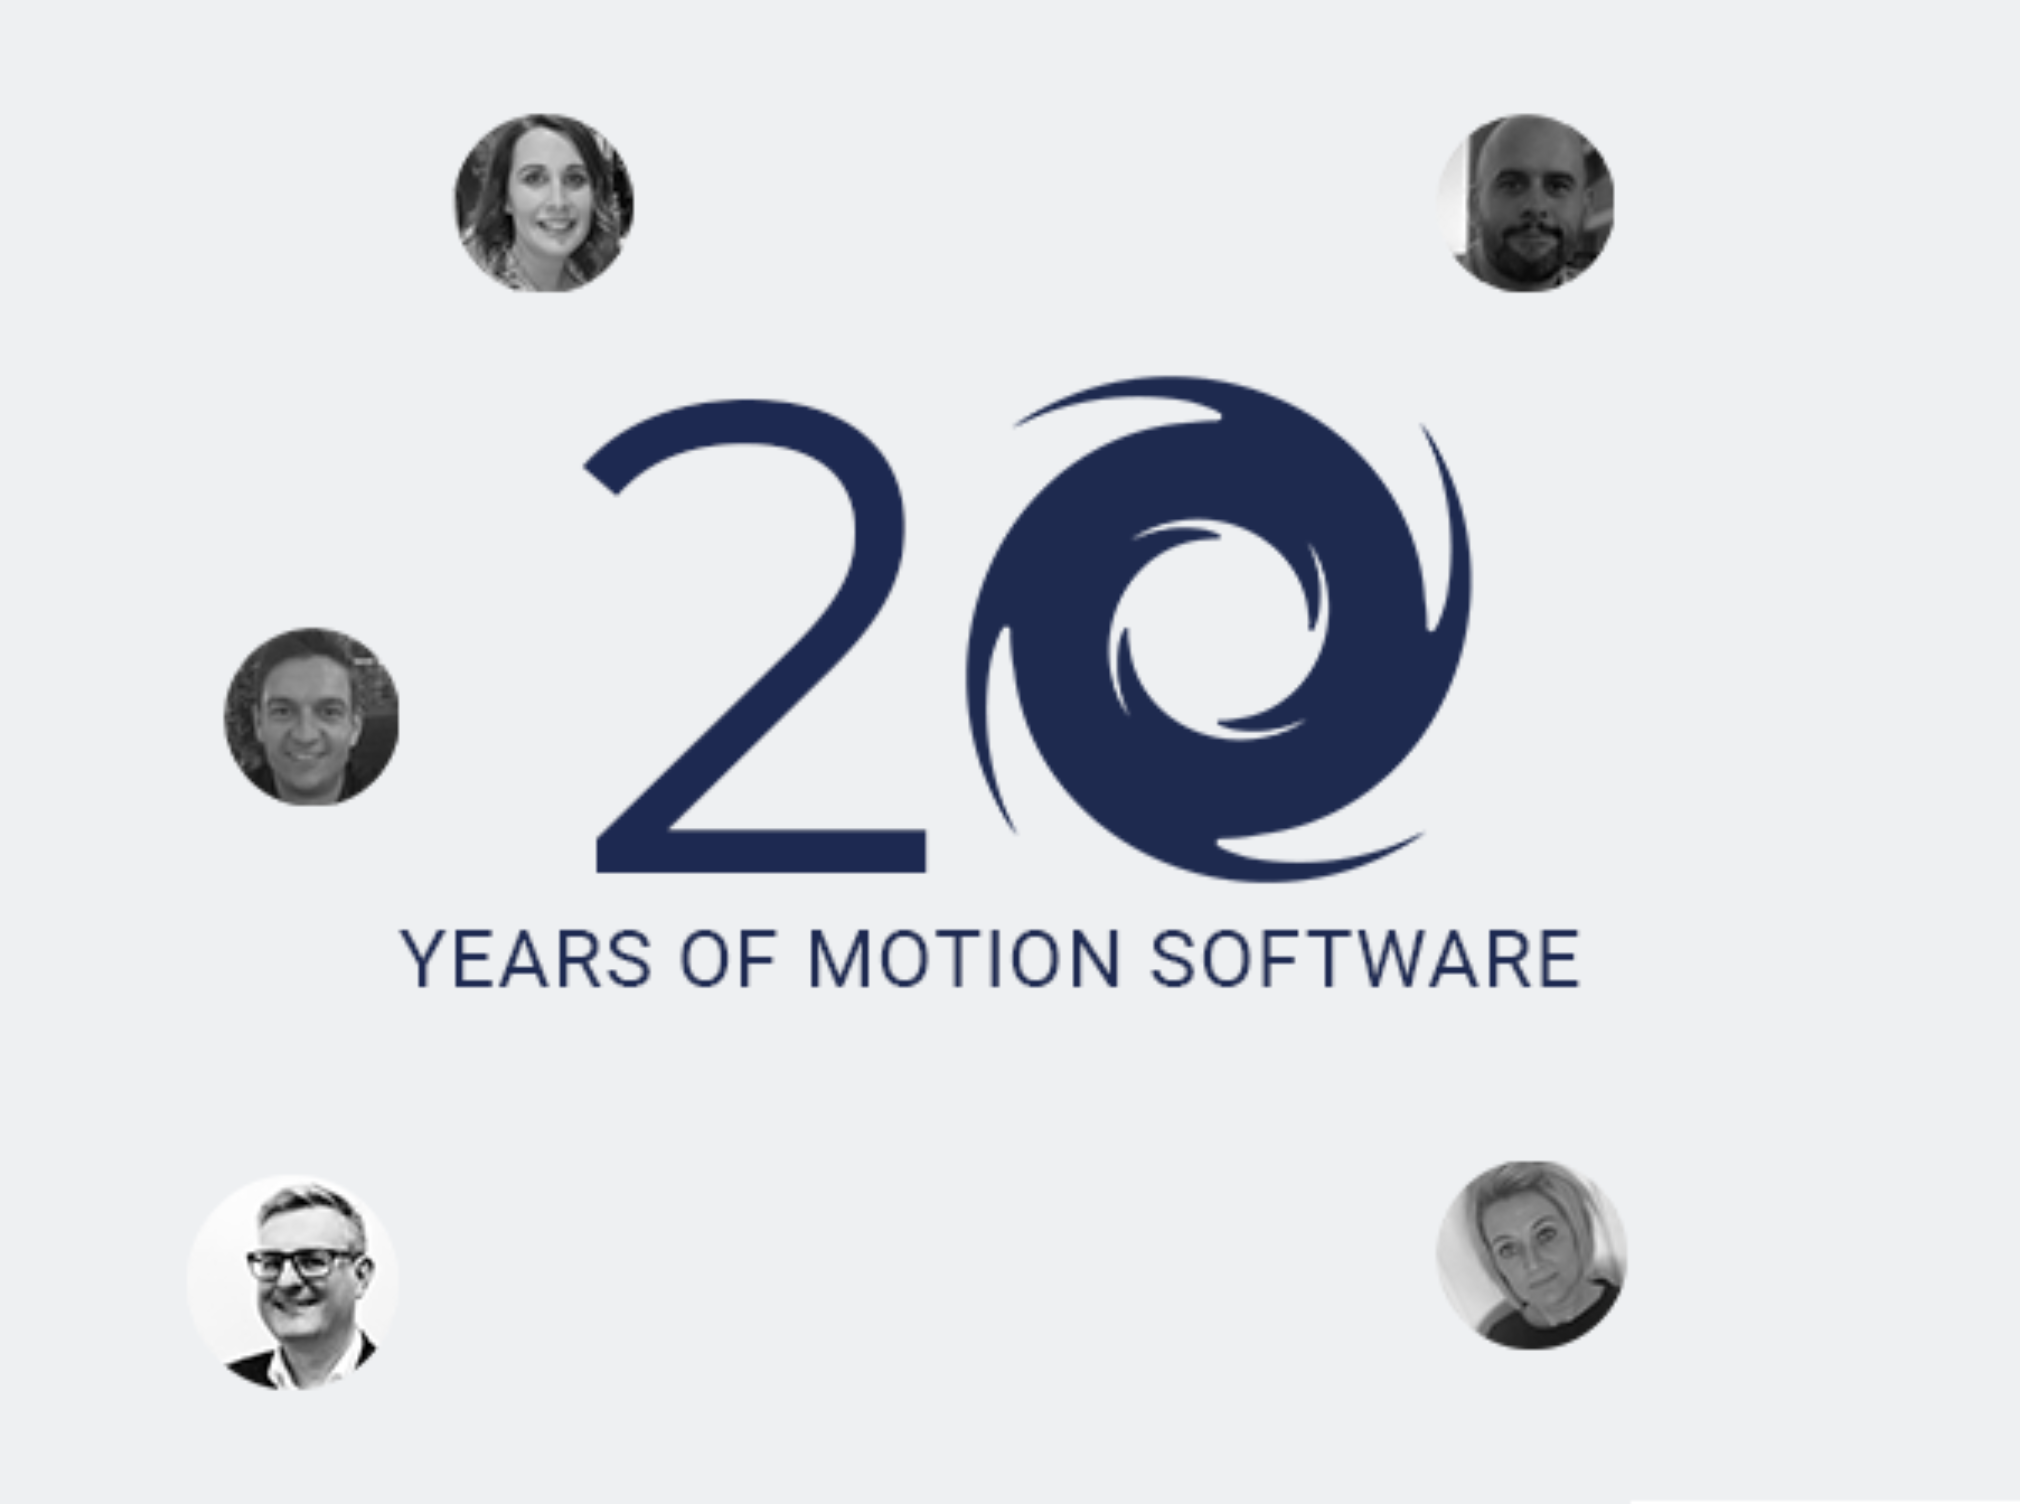 Celebrating 20 years of Motion Software